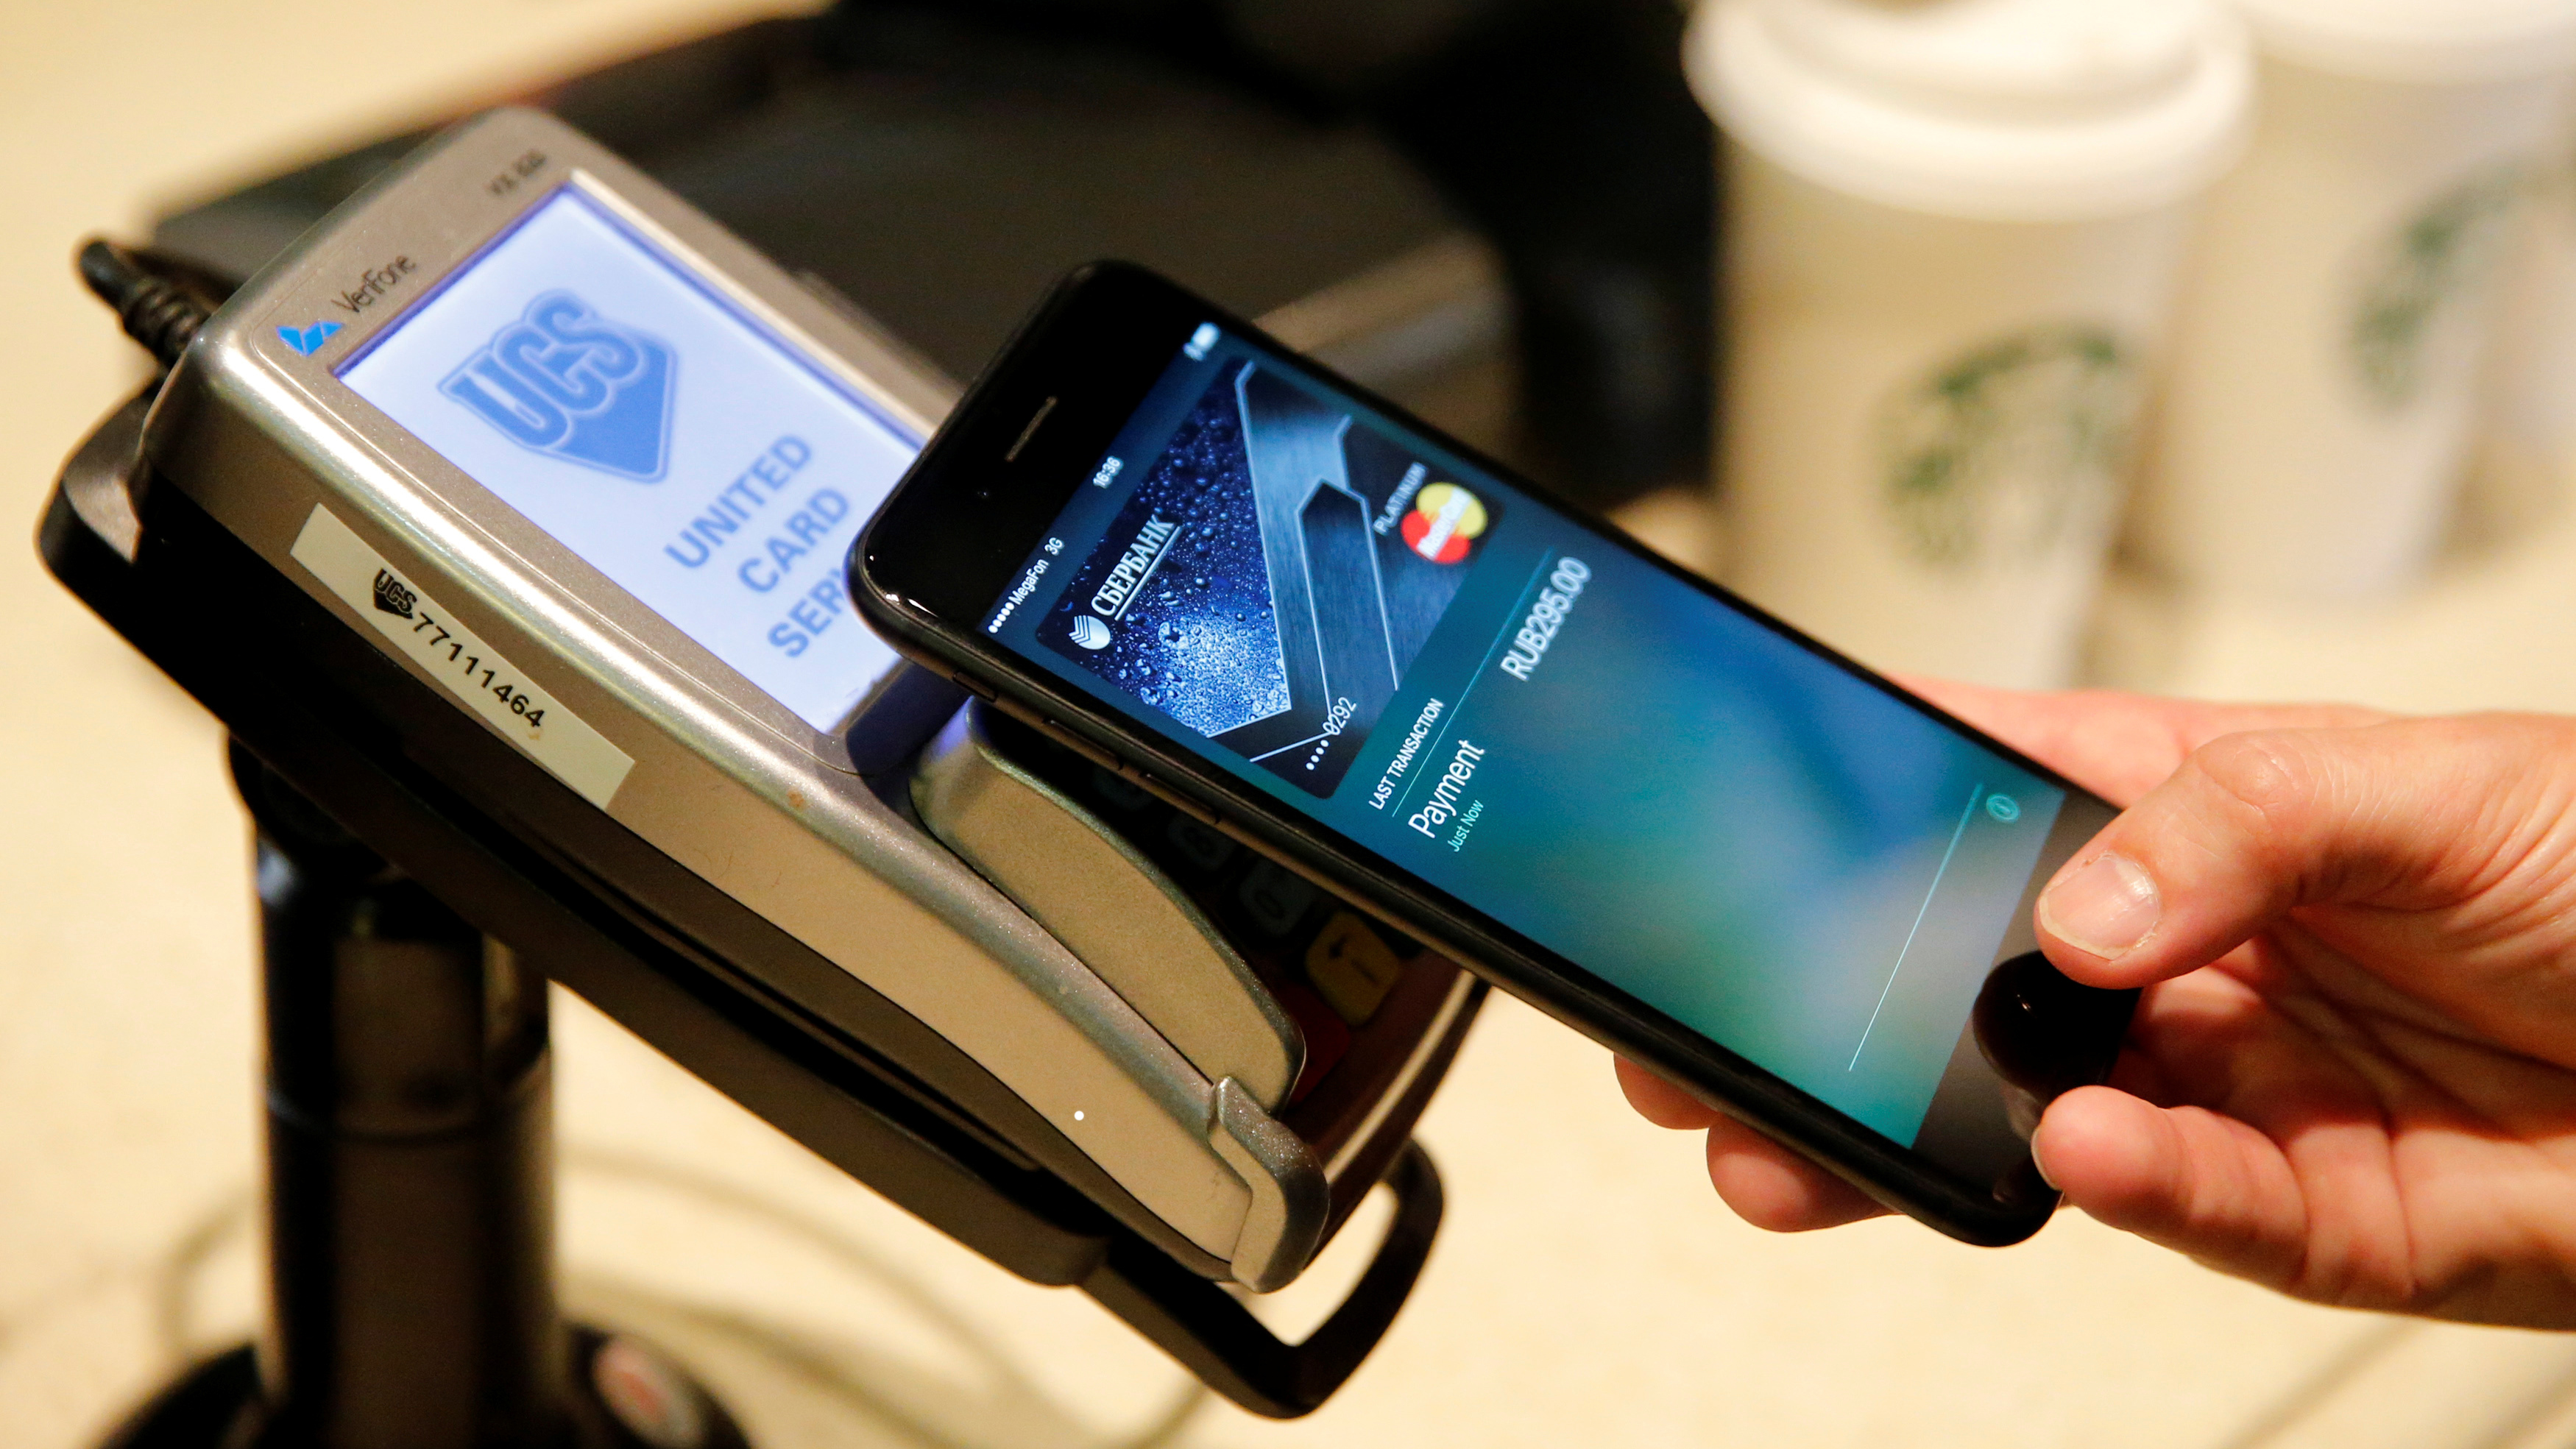 A man uses an iPhone 7 smartphone to demonstrate the mobile payment service Apple Pay at a cafe in Moscow, Russia, October 3, 2016. Picture taken October 3, 2016.   REUTERS/Maxim Zmeyev - S1BEUEYZNGAB